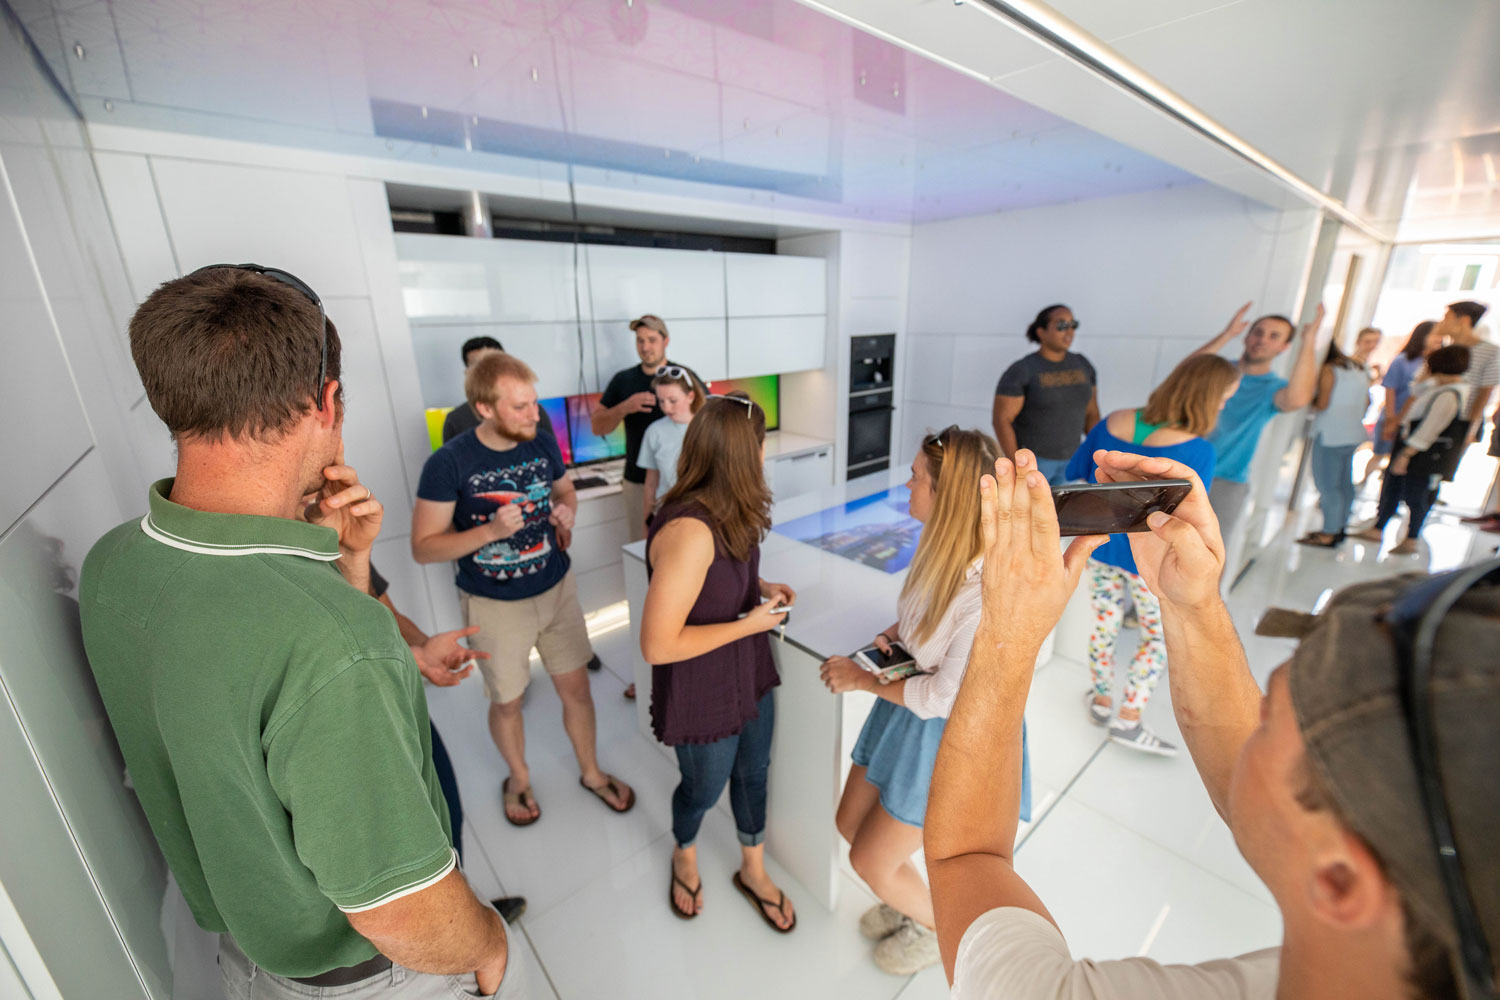 A man holding a smartphone holds it up to take a picture of the house, which is white inside with some colorful electronic displays. There is a crowd of people standing inside the house.